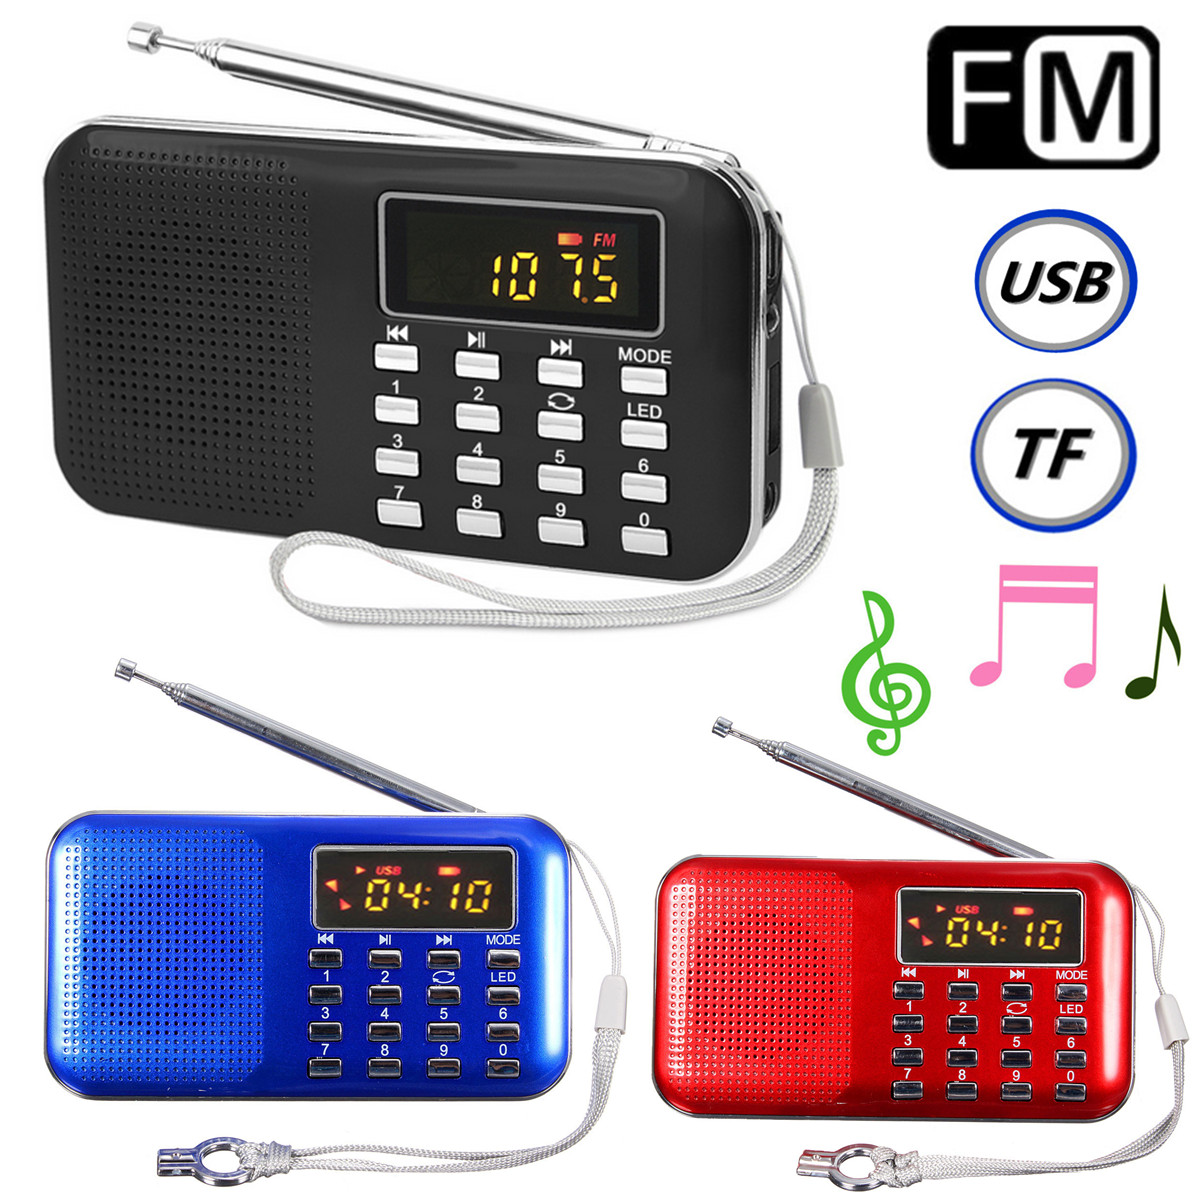 mini portable lcd digital fm radio speaker usb micro sd tf card mp3 music player ebay. Black Bedroom Furniture Sets. Home Design Ideas